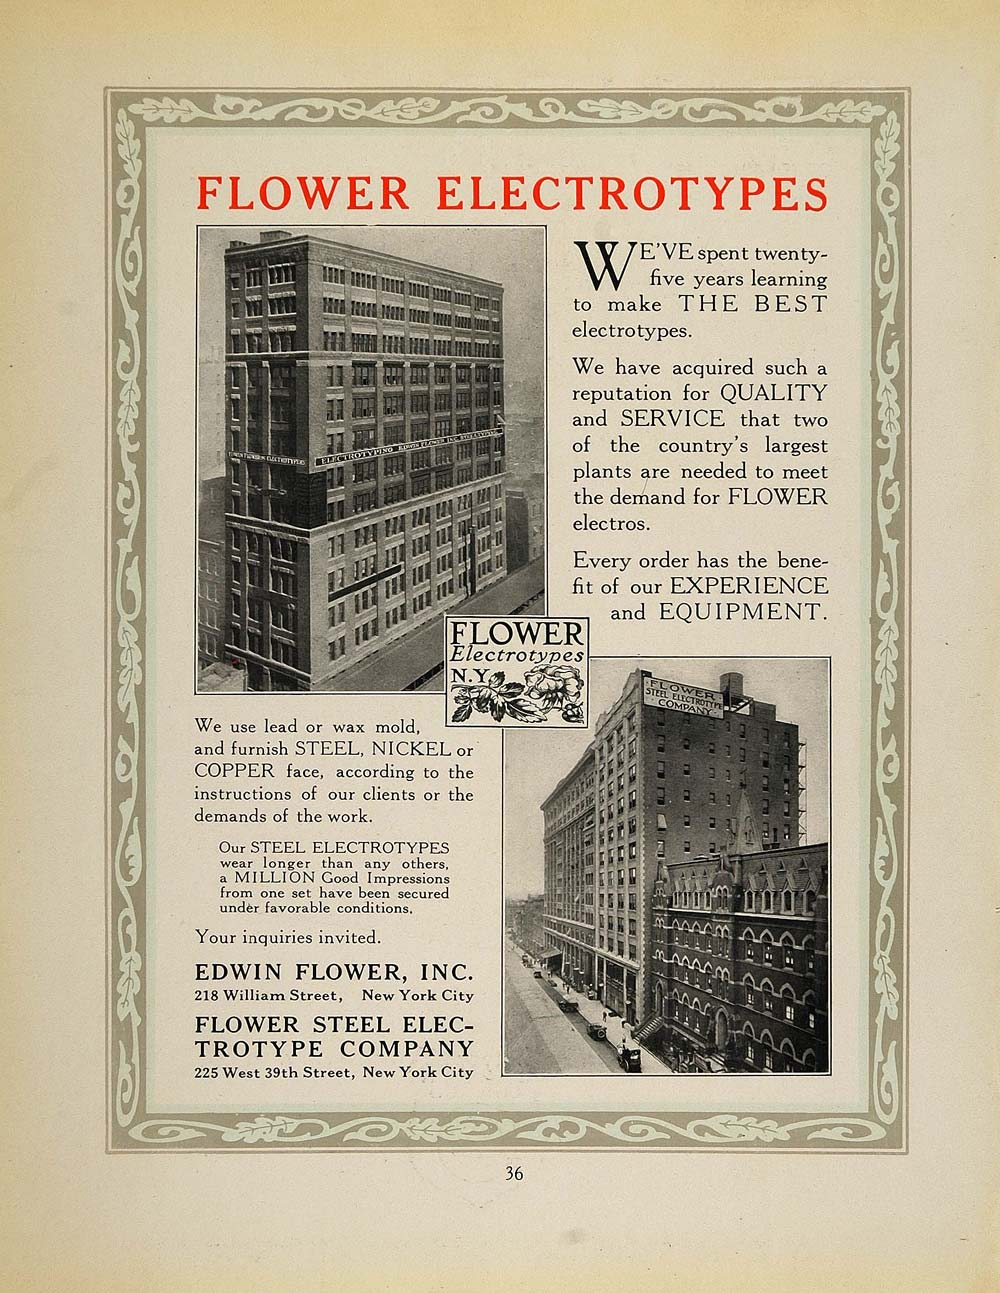 1913 Ad Edwin Flower Steel Electrotype Building NYC - ORIGINAL ADVERTISING GAC1